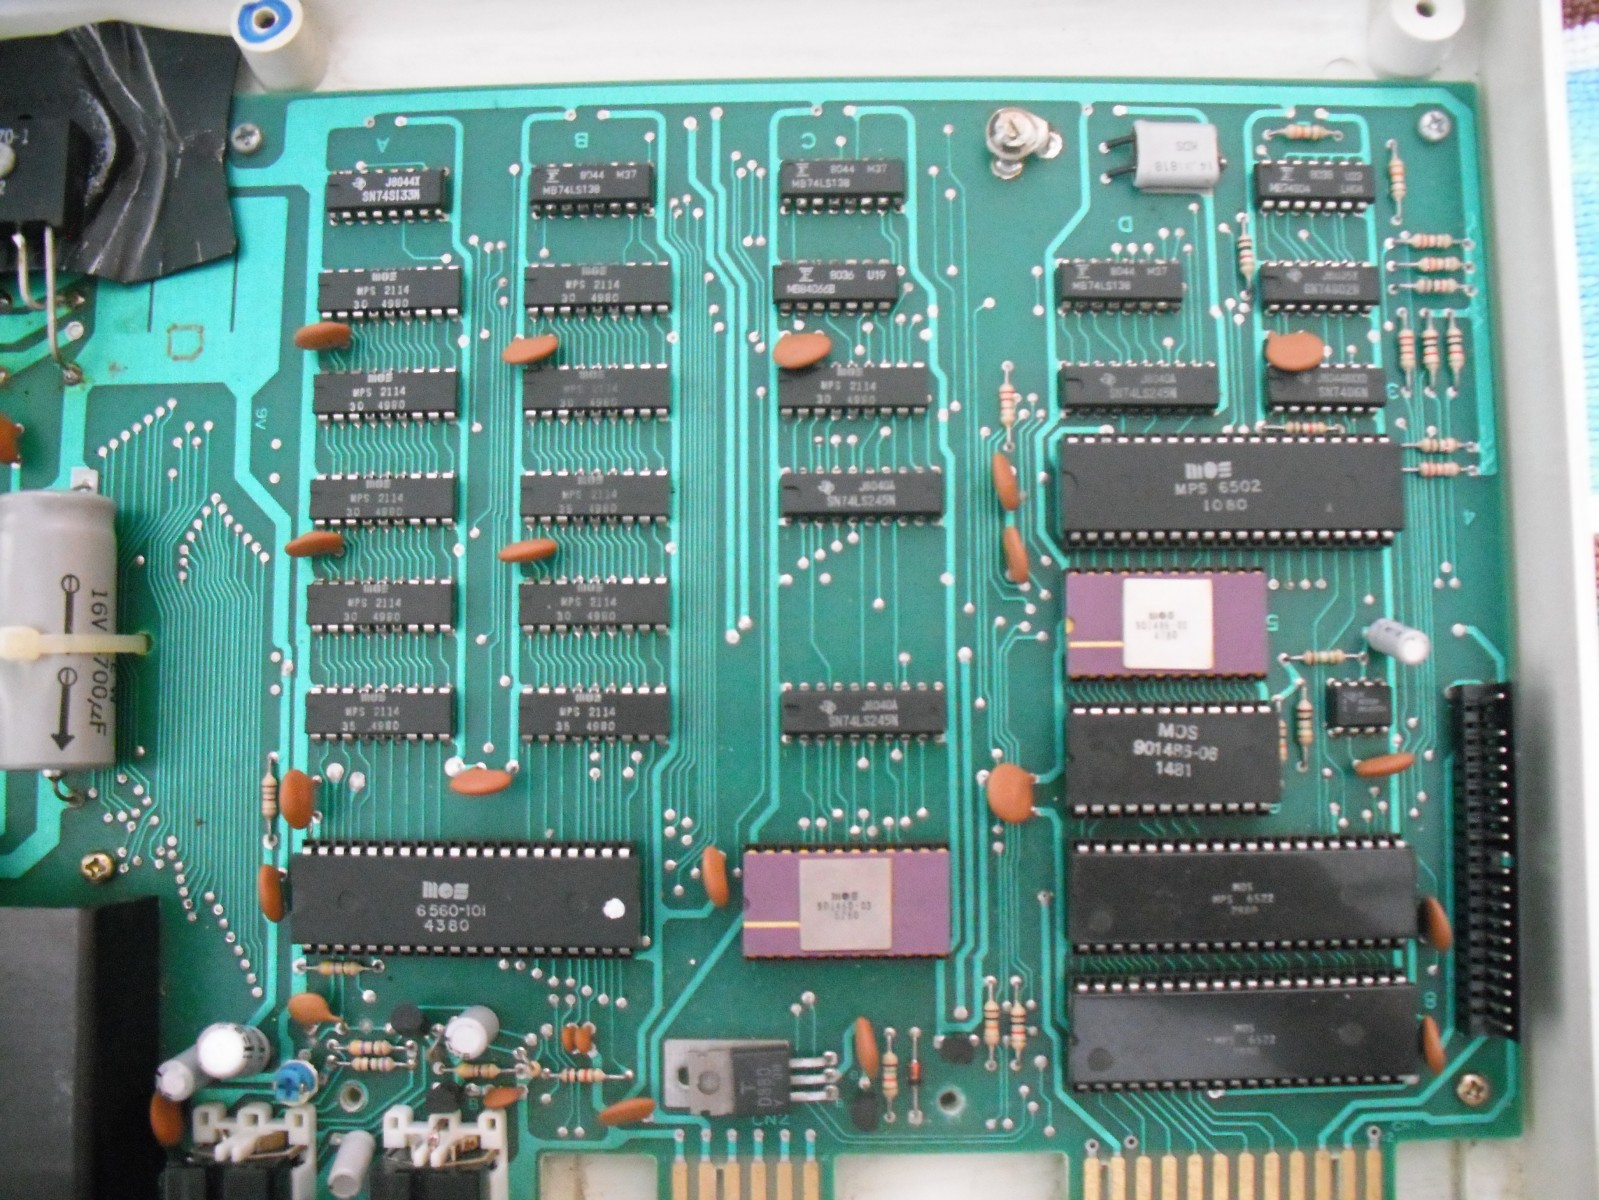 VIC-20 Chip Layout